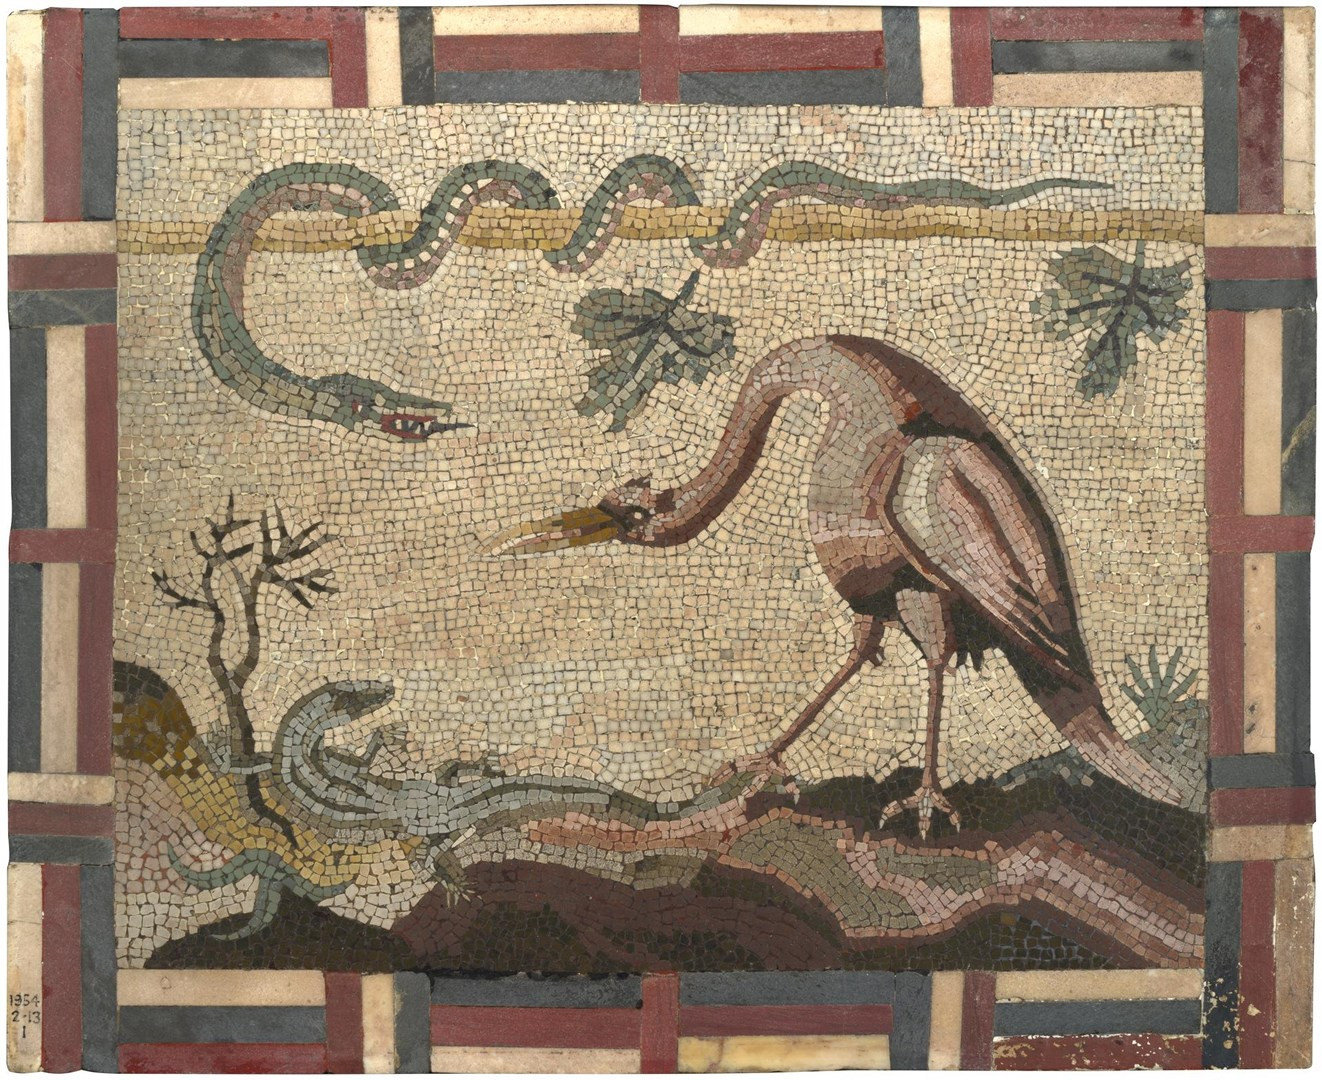 Crane, Python and Lizard by Italian, Roman